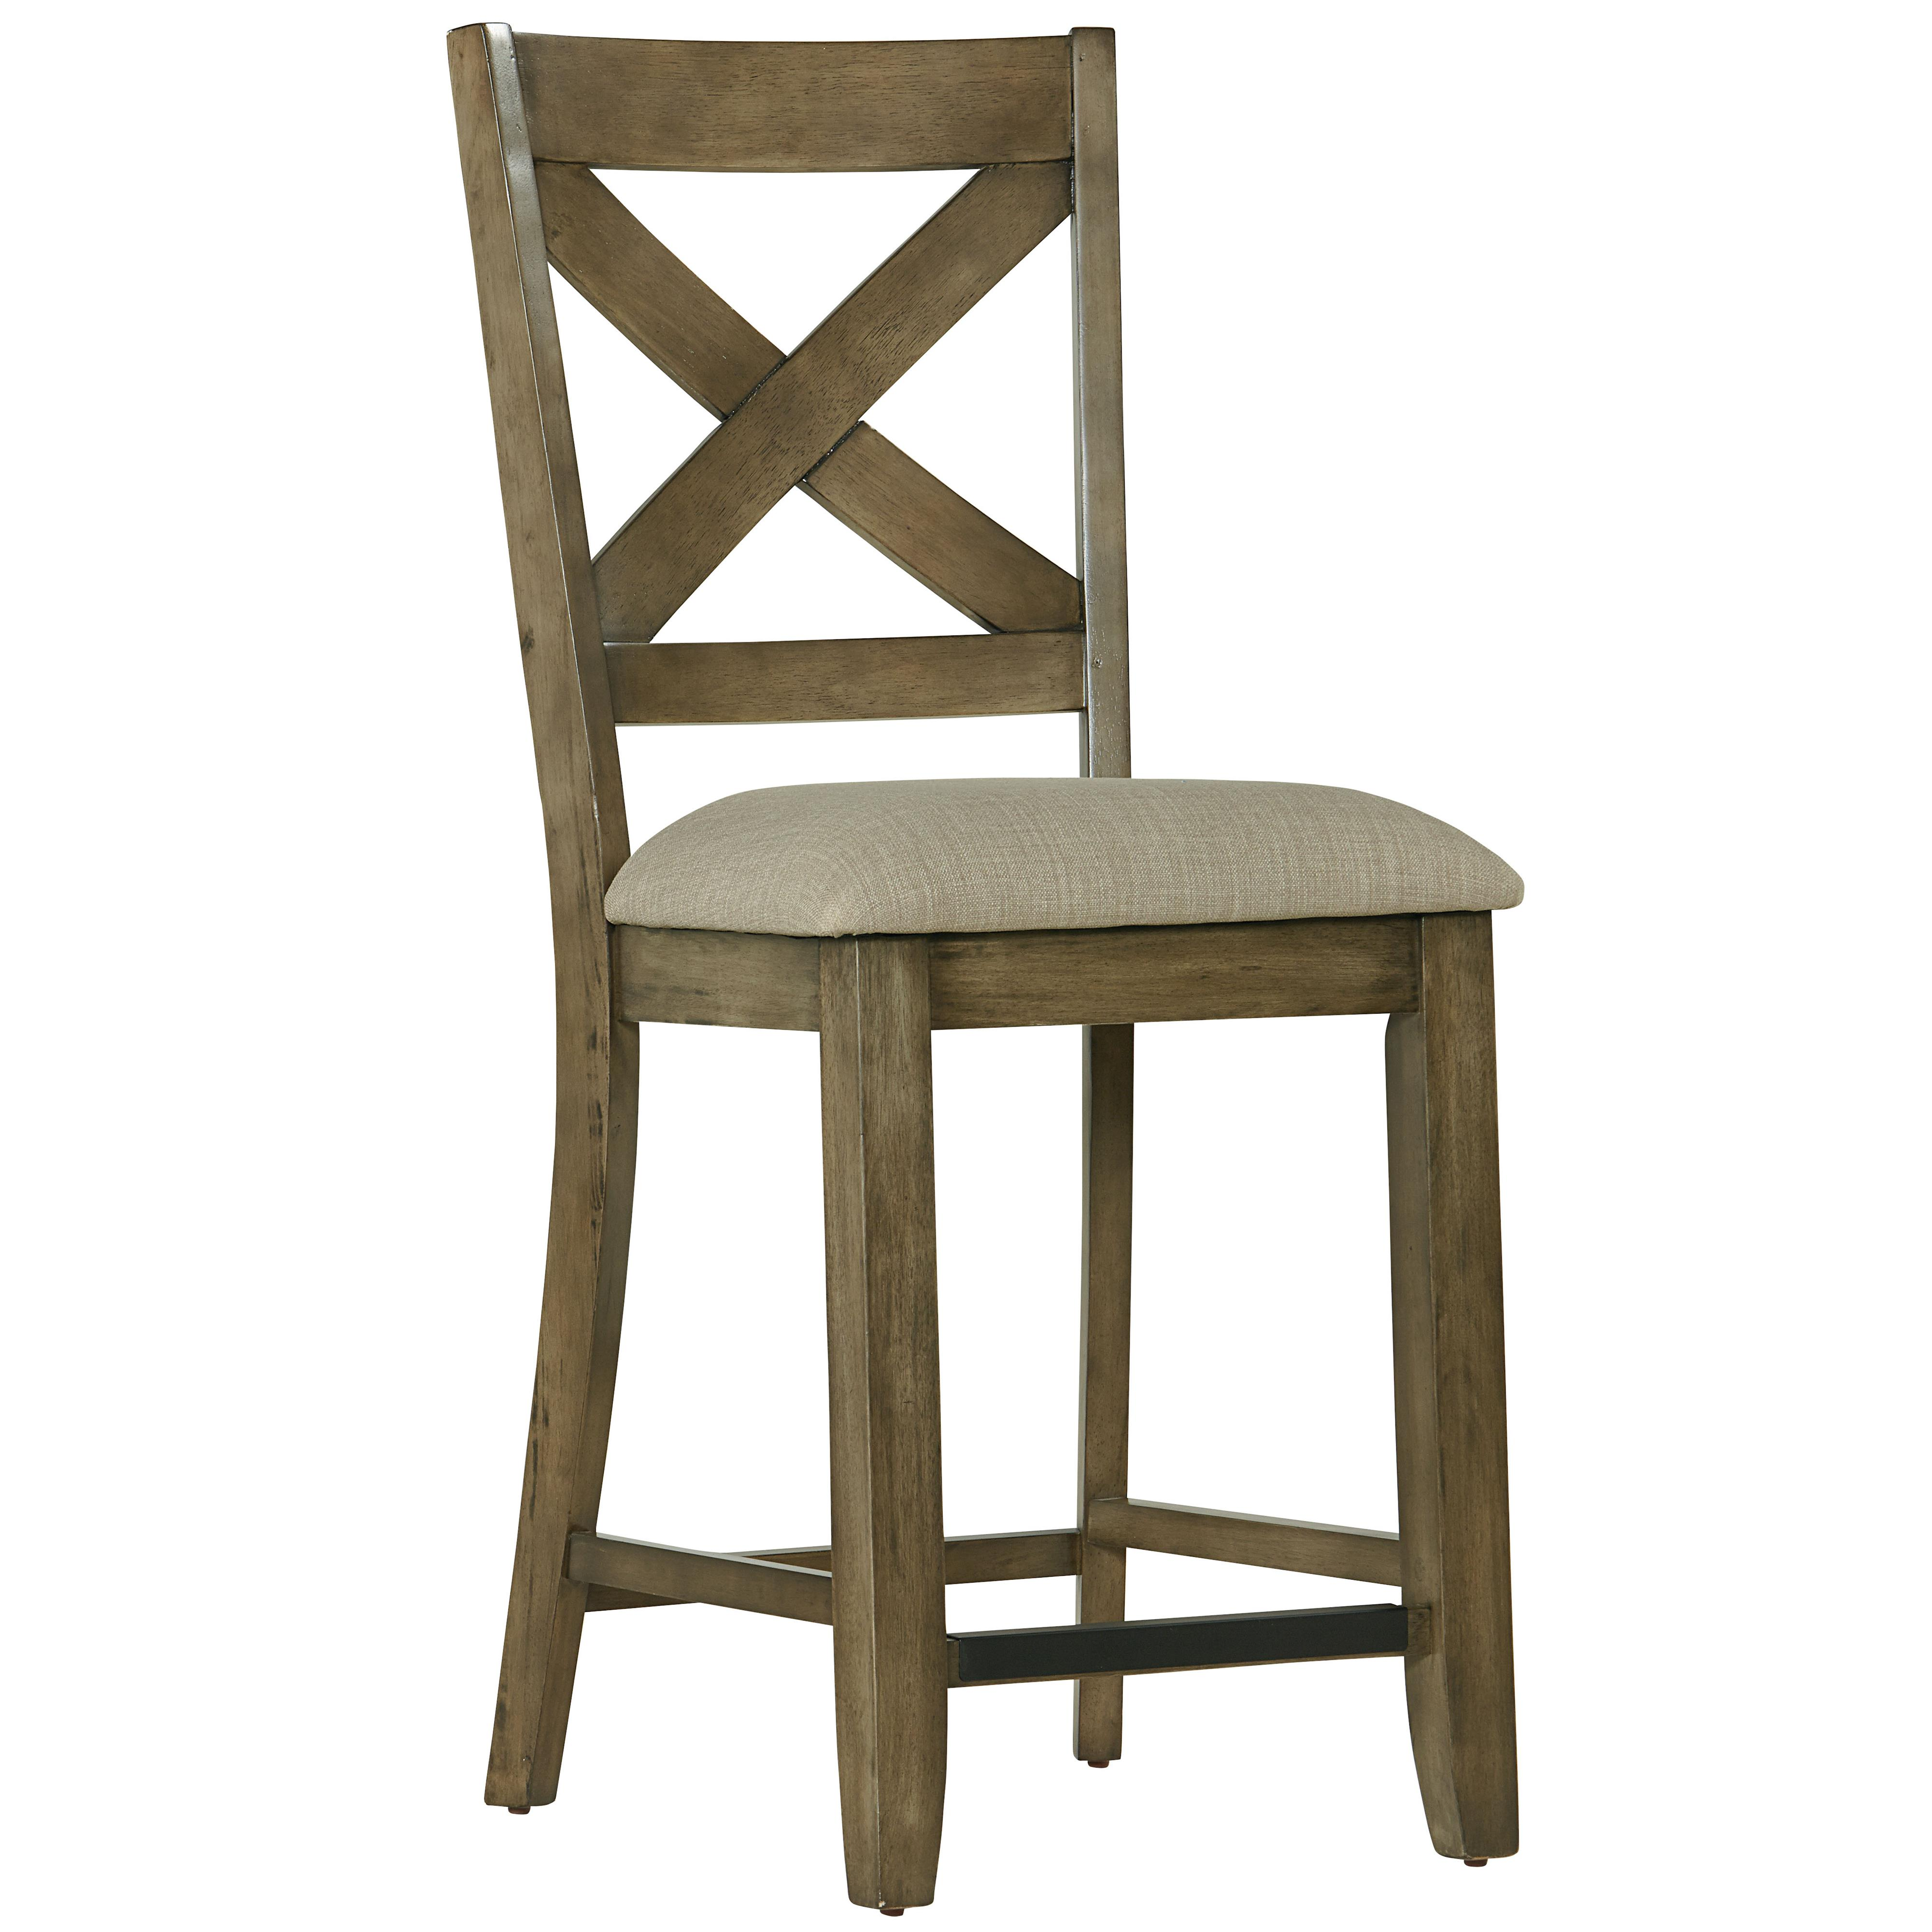 standard furniture omaha grey counter height bar stool. Black Bedroom Furniture Sets. Home Design Ideas